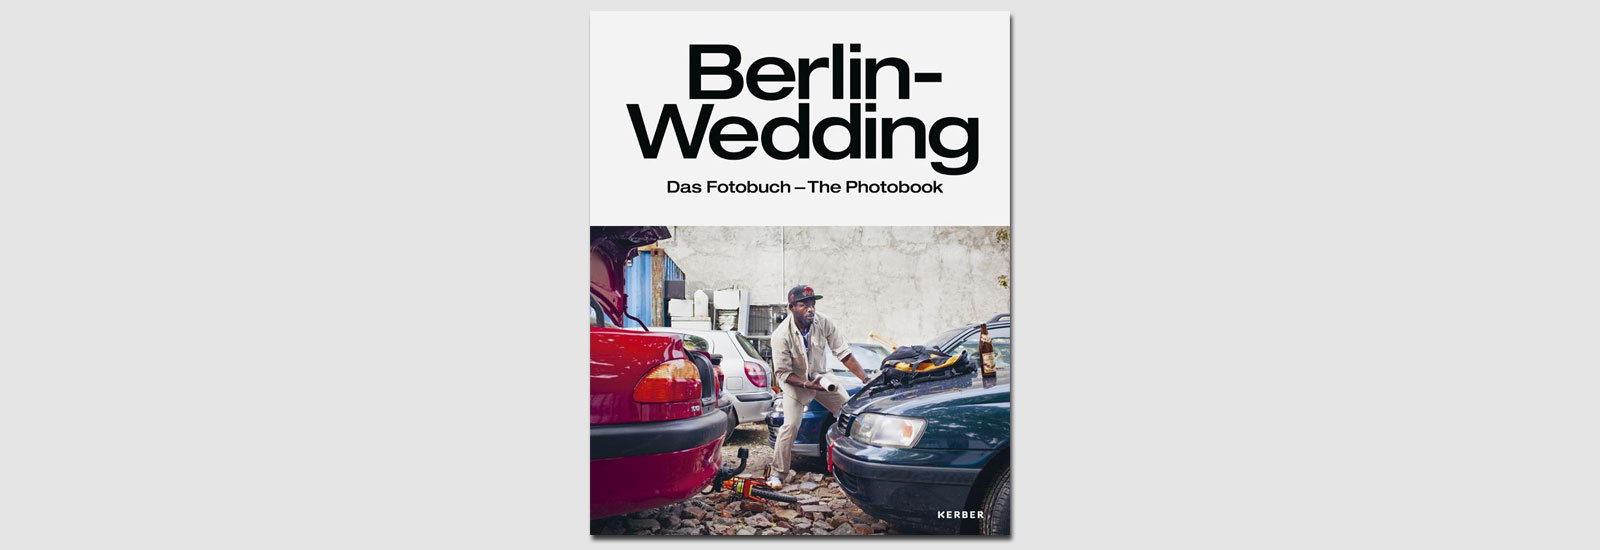 Galerie Wedding – Space For Contemporary Art | »Berlin-Wedding. Ein Stadtteil – 16 Fotografische Positionen«